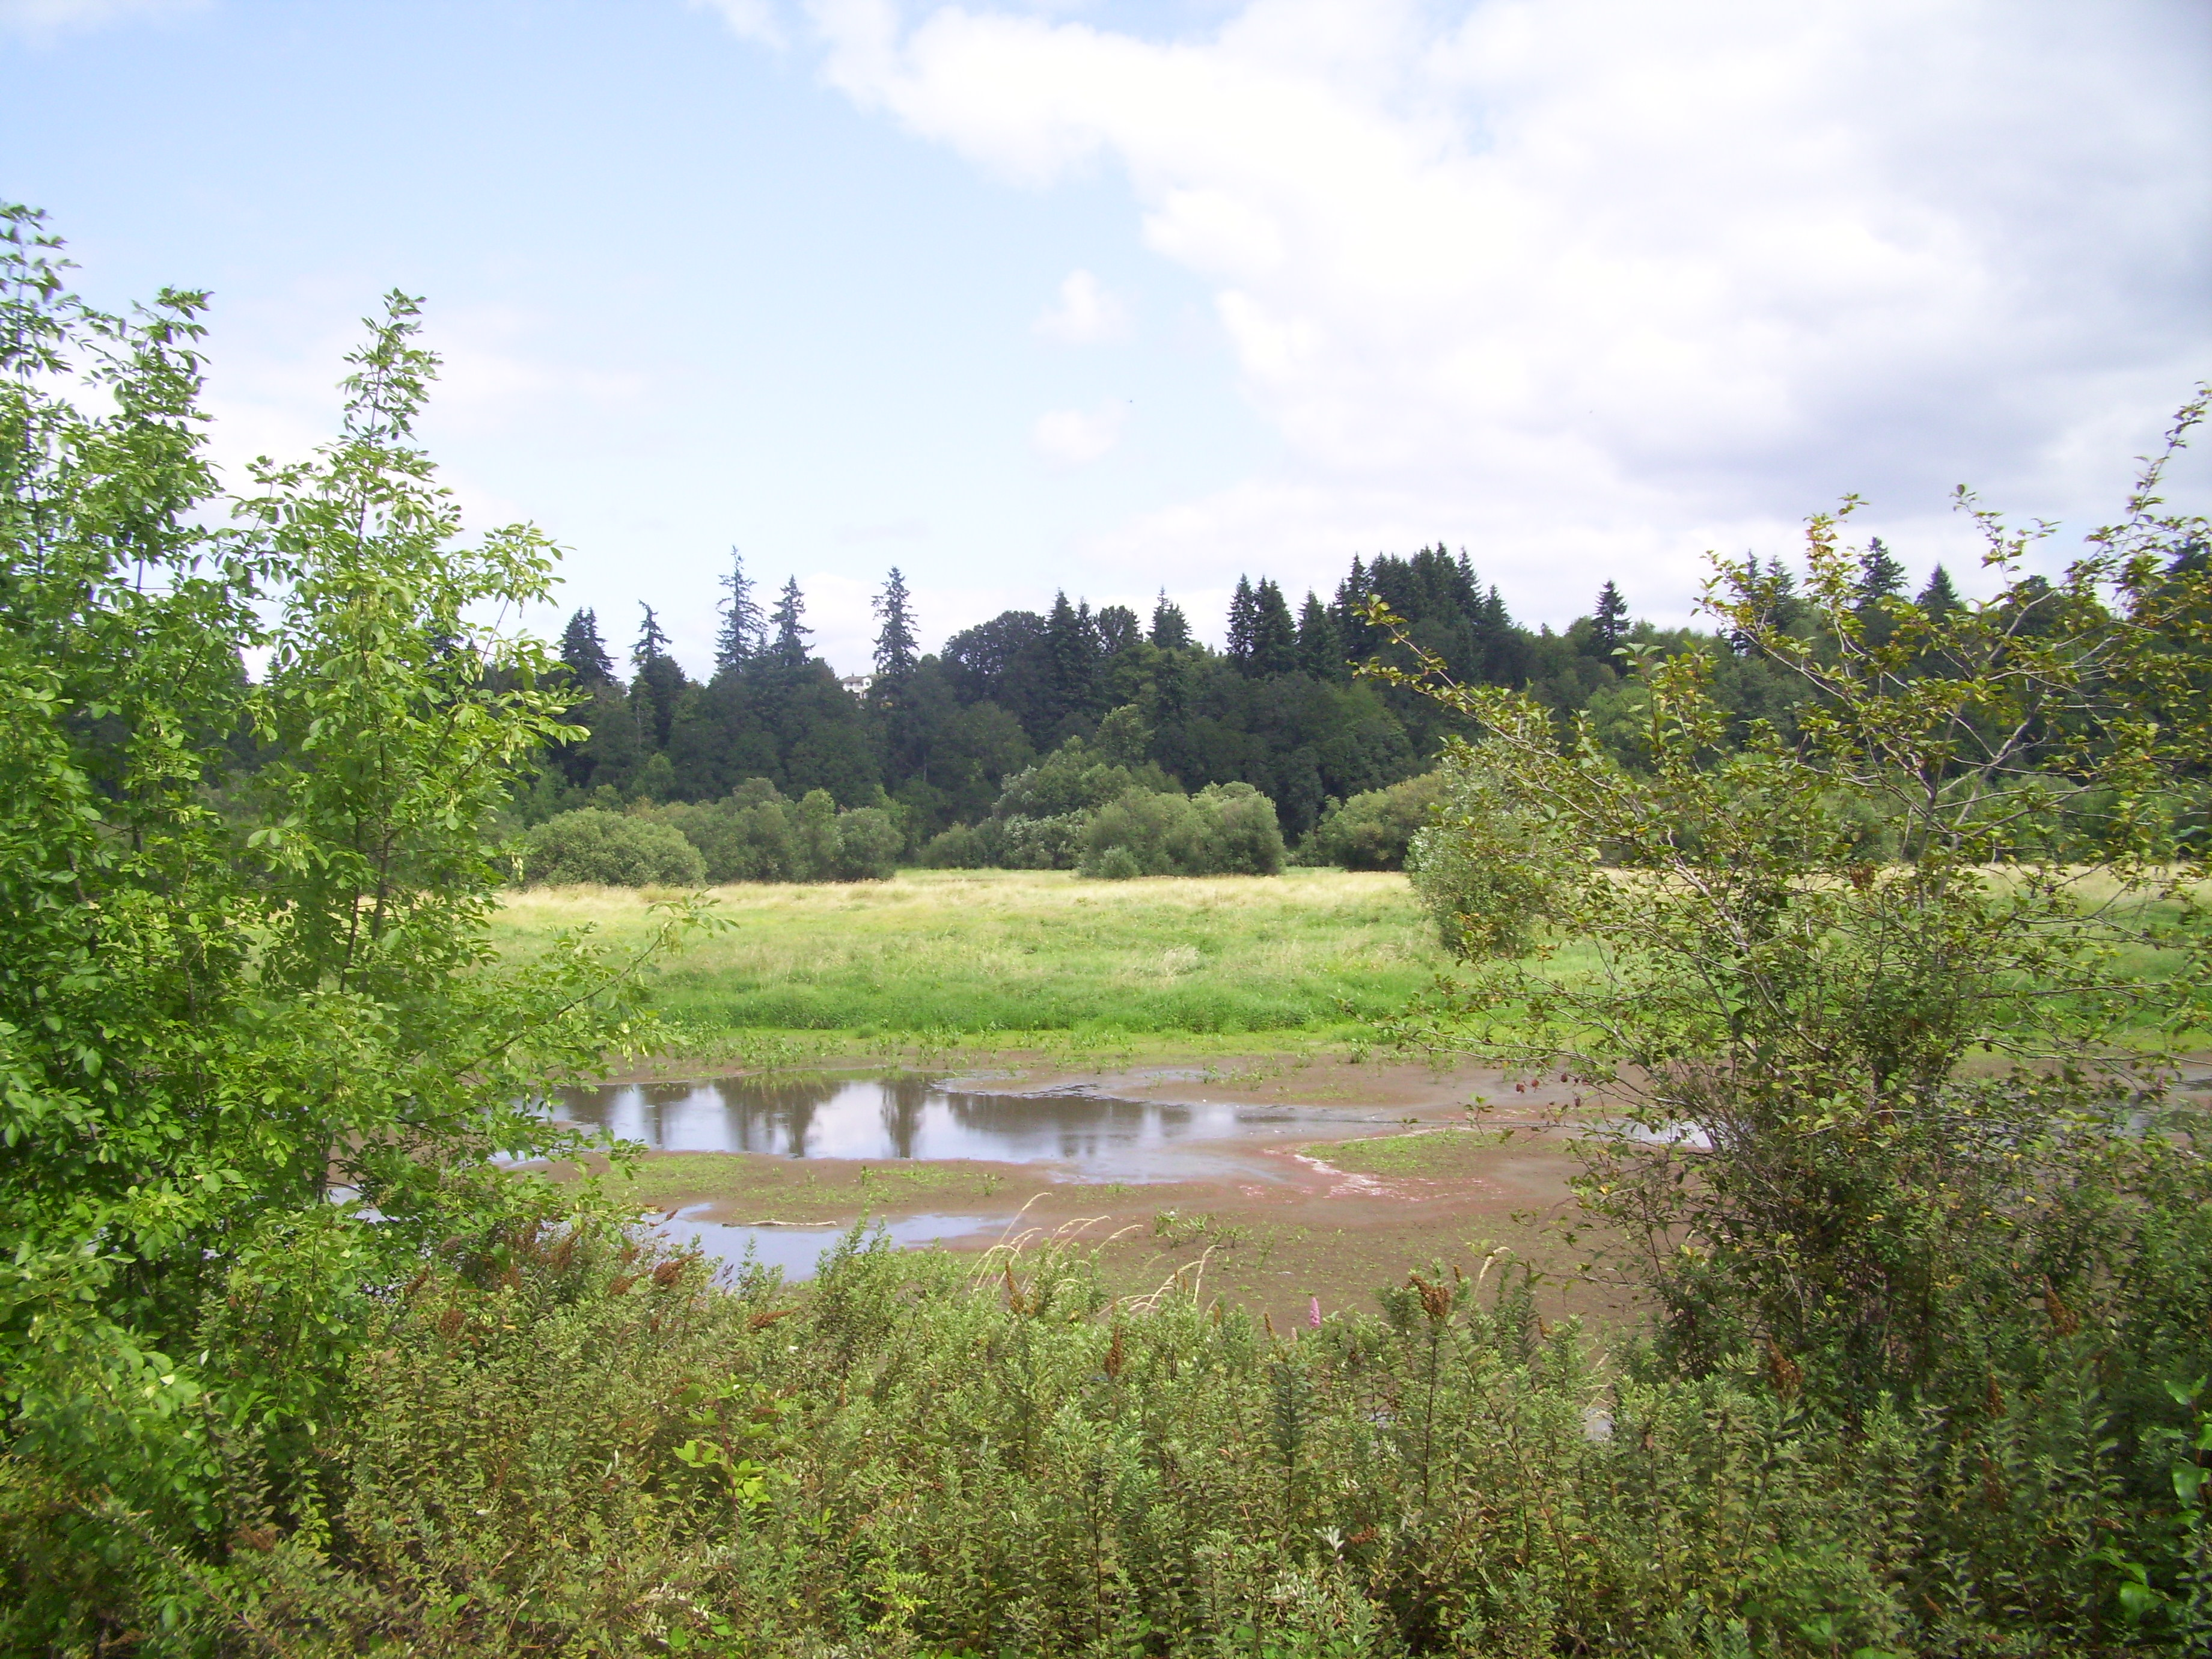 The Salmon Creek wetlands are gorgeous